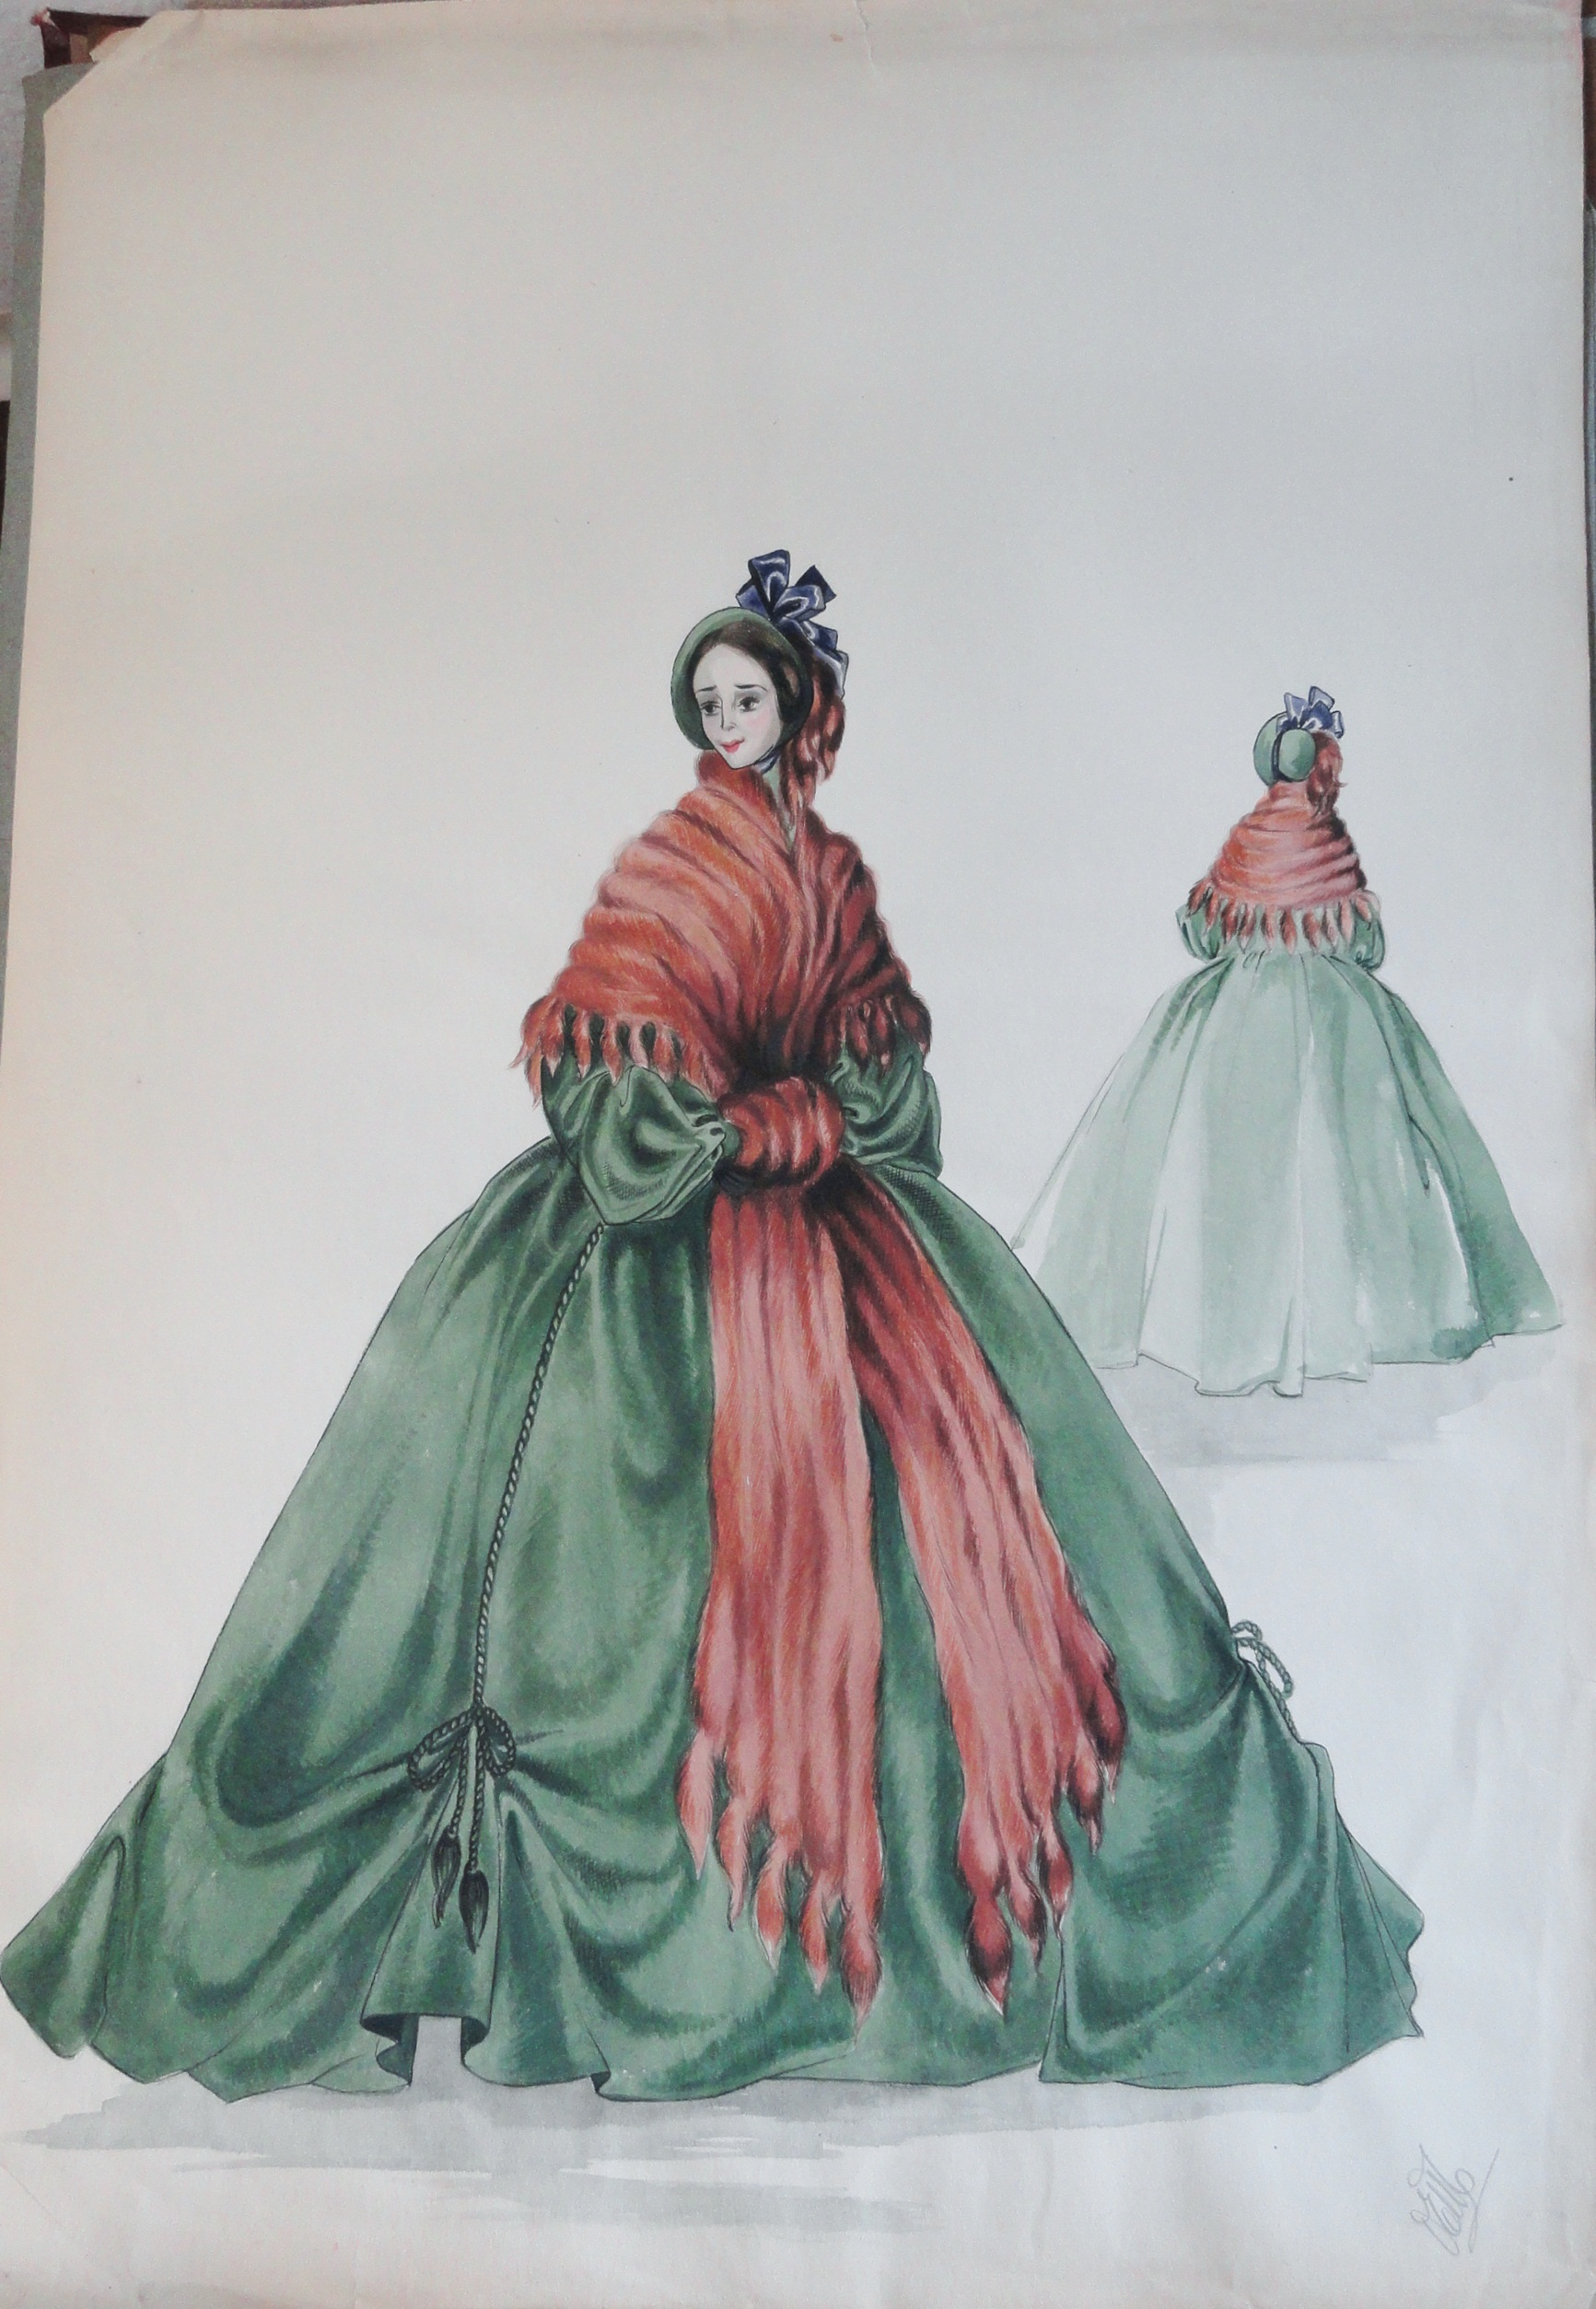 Rachel Felix in long green dress with fur stole. Pen and ink and gouache. Signed.  From the Rachel Portfolio by Owen Hyde Clark.